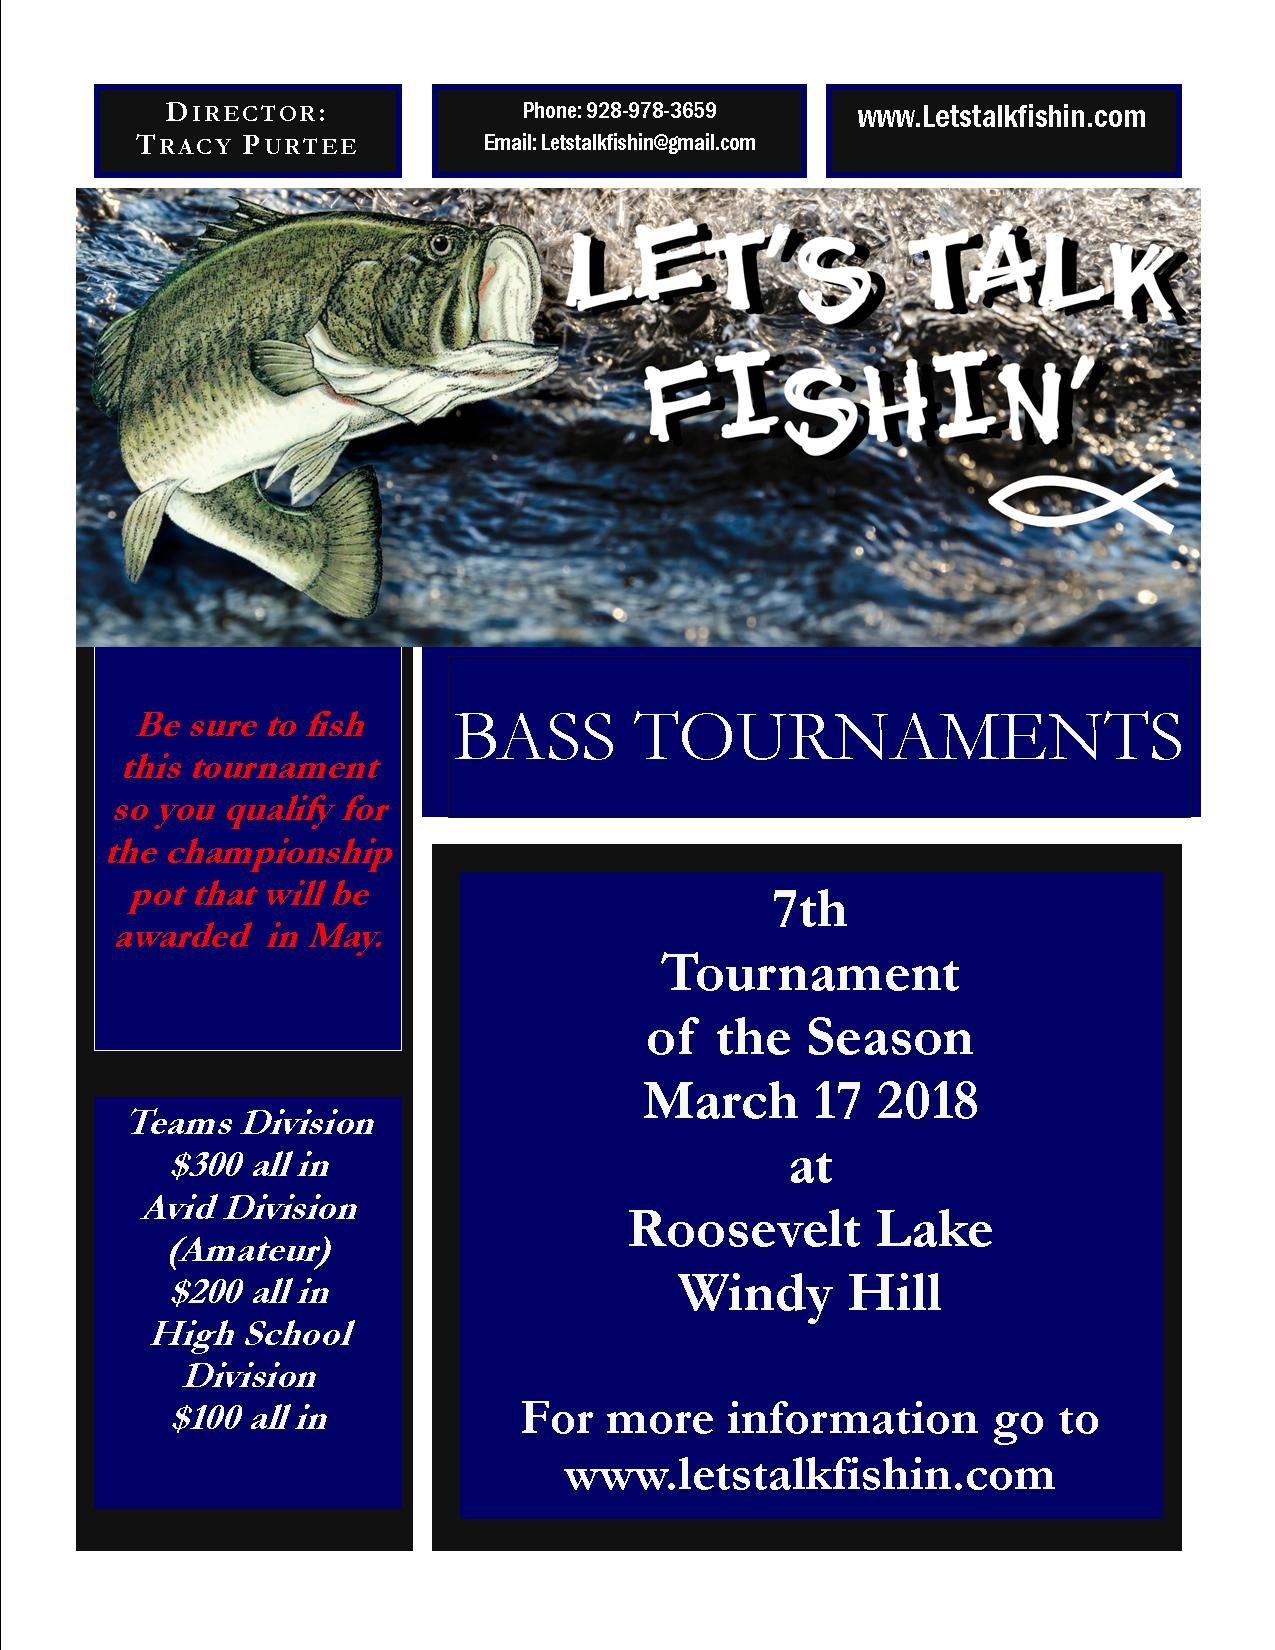 Click image for larger version  Name:7th Tournament.jpg Views:1934 Size:283.6 KB ID:96826